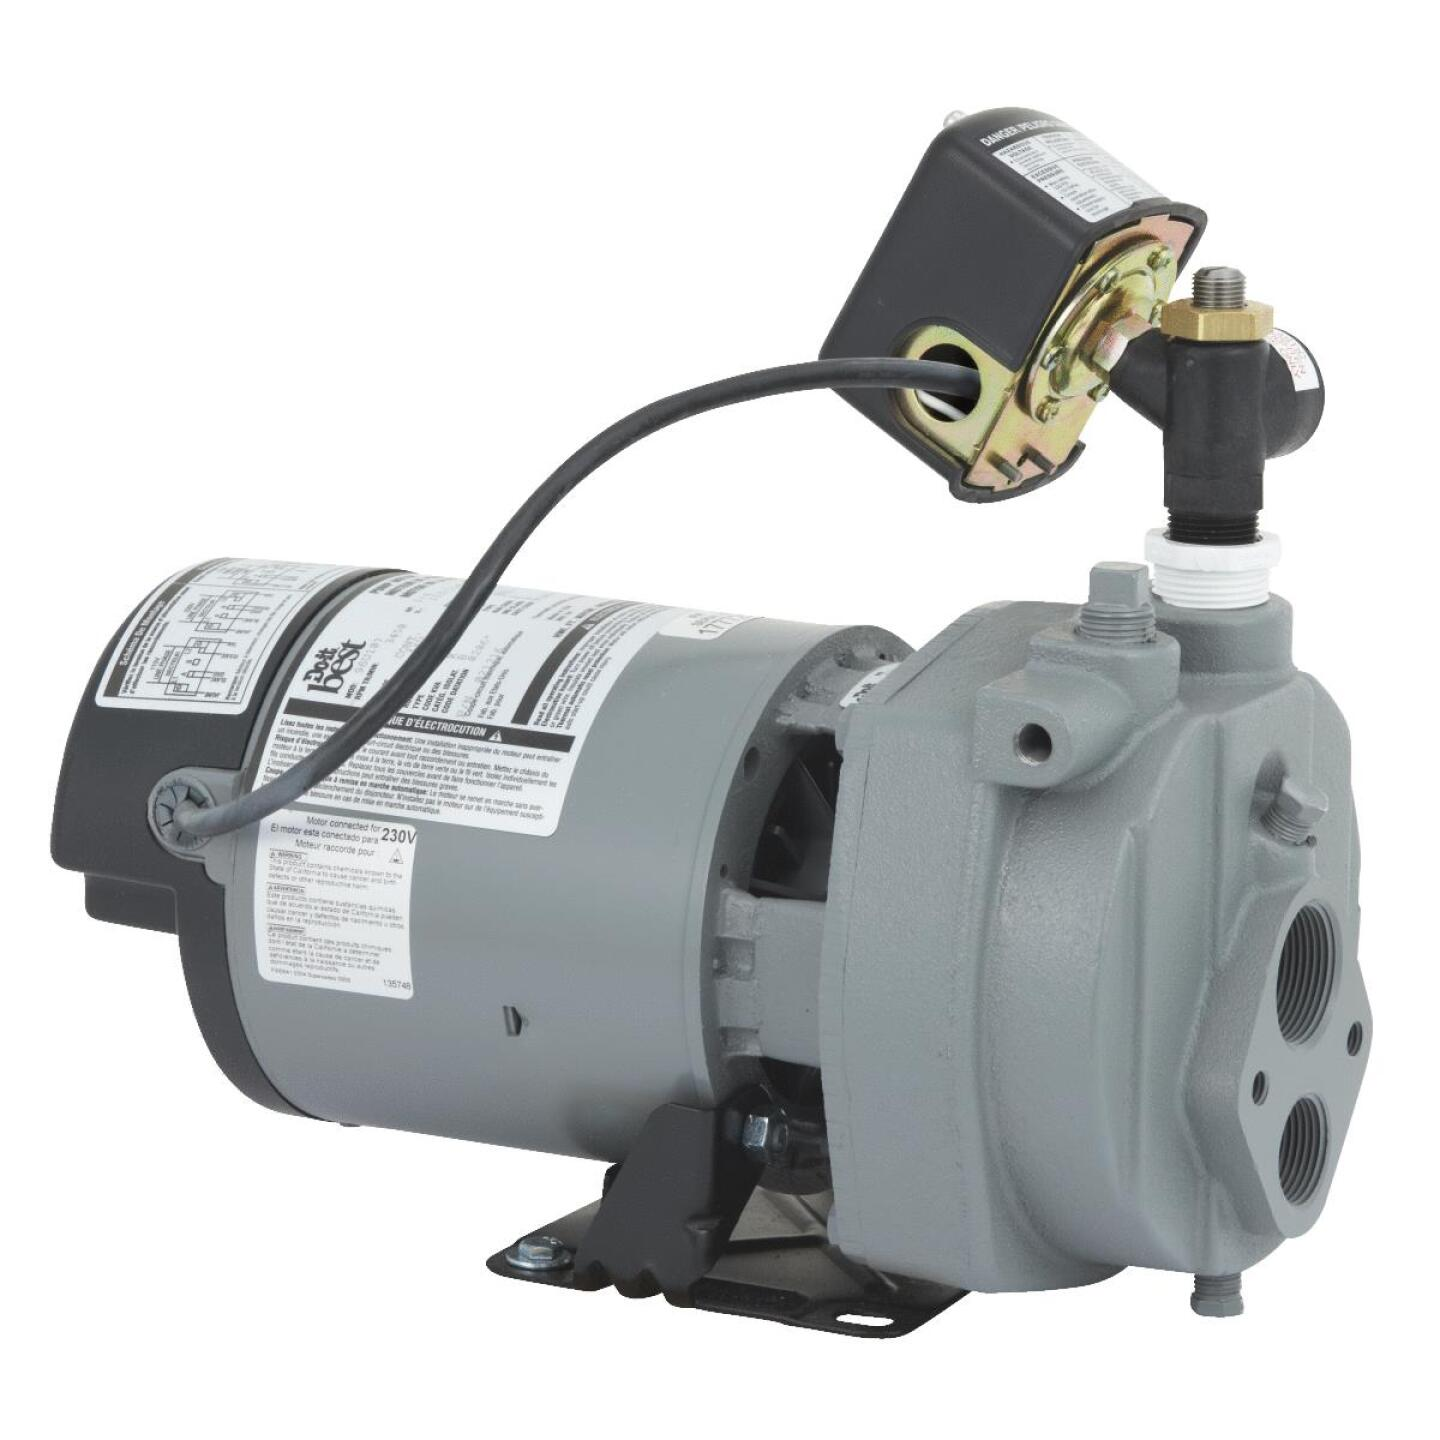 Do it Best 3/4 HP Cast Iron Water Conventional Well Jet Pump Image 2